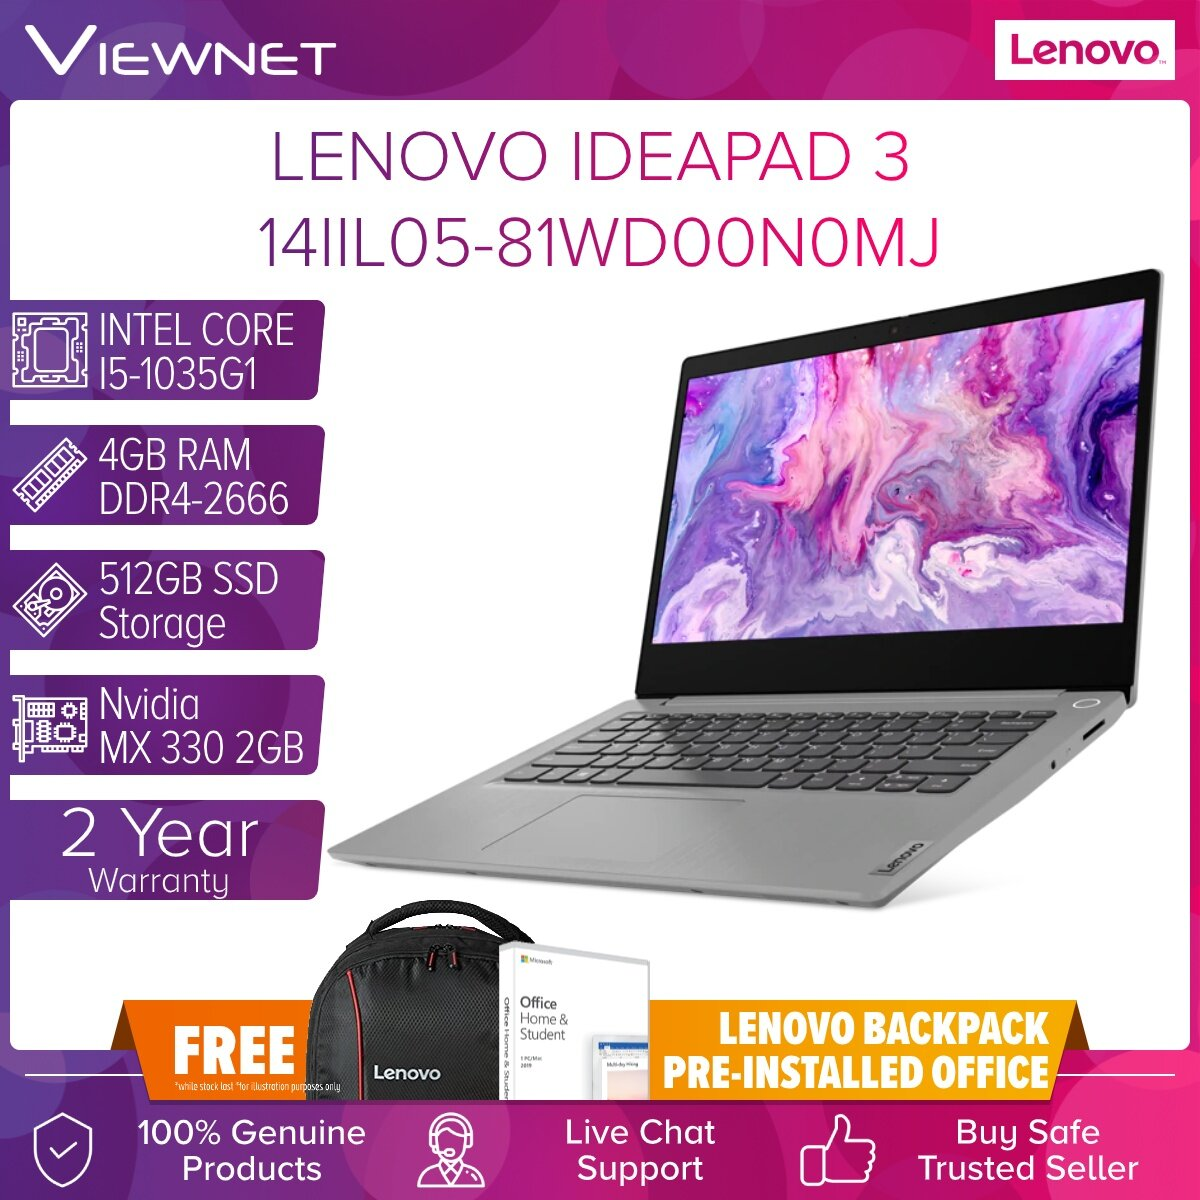 LENOVO IDEADPAD 3 14IIL05 81WD00N0MJ 81WD00N1MJ 81WD00N2MJ LAPTOP INTEL CORE I5-1035G1 4GB DDR4 512GB SSD M.2 PCIE MX330 2GB 14.0